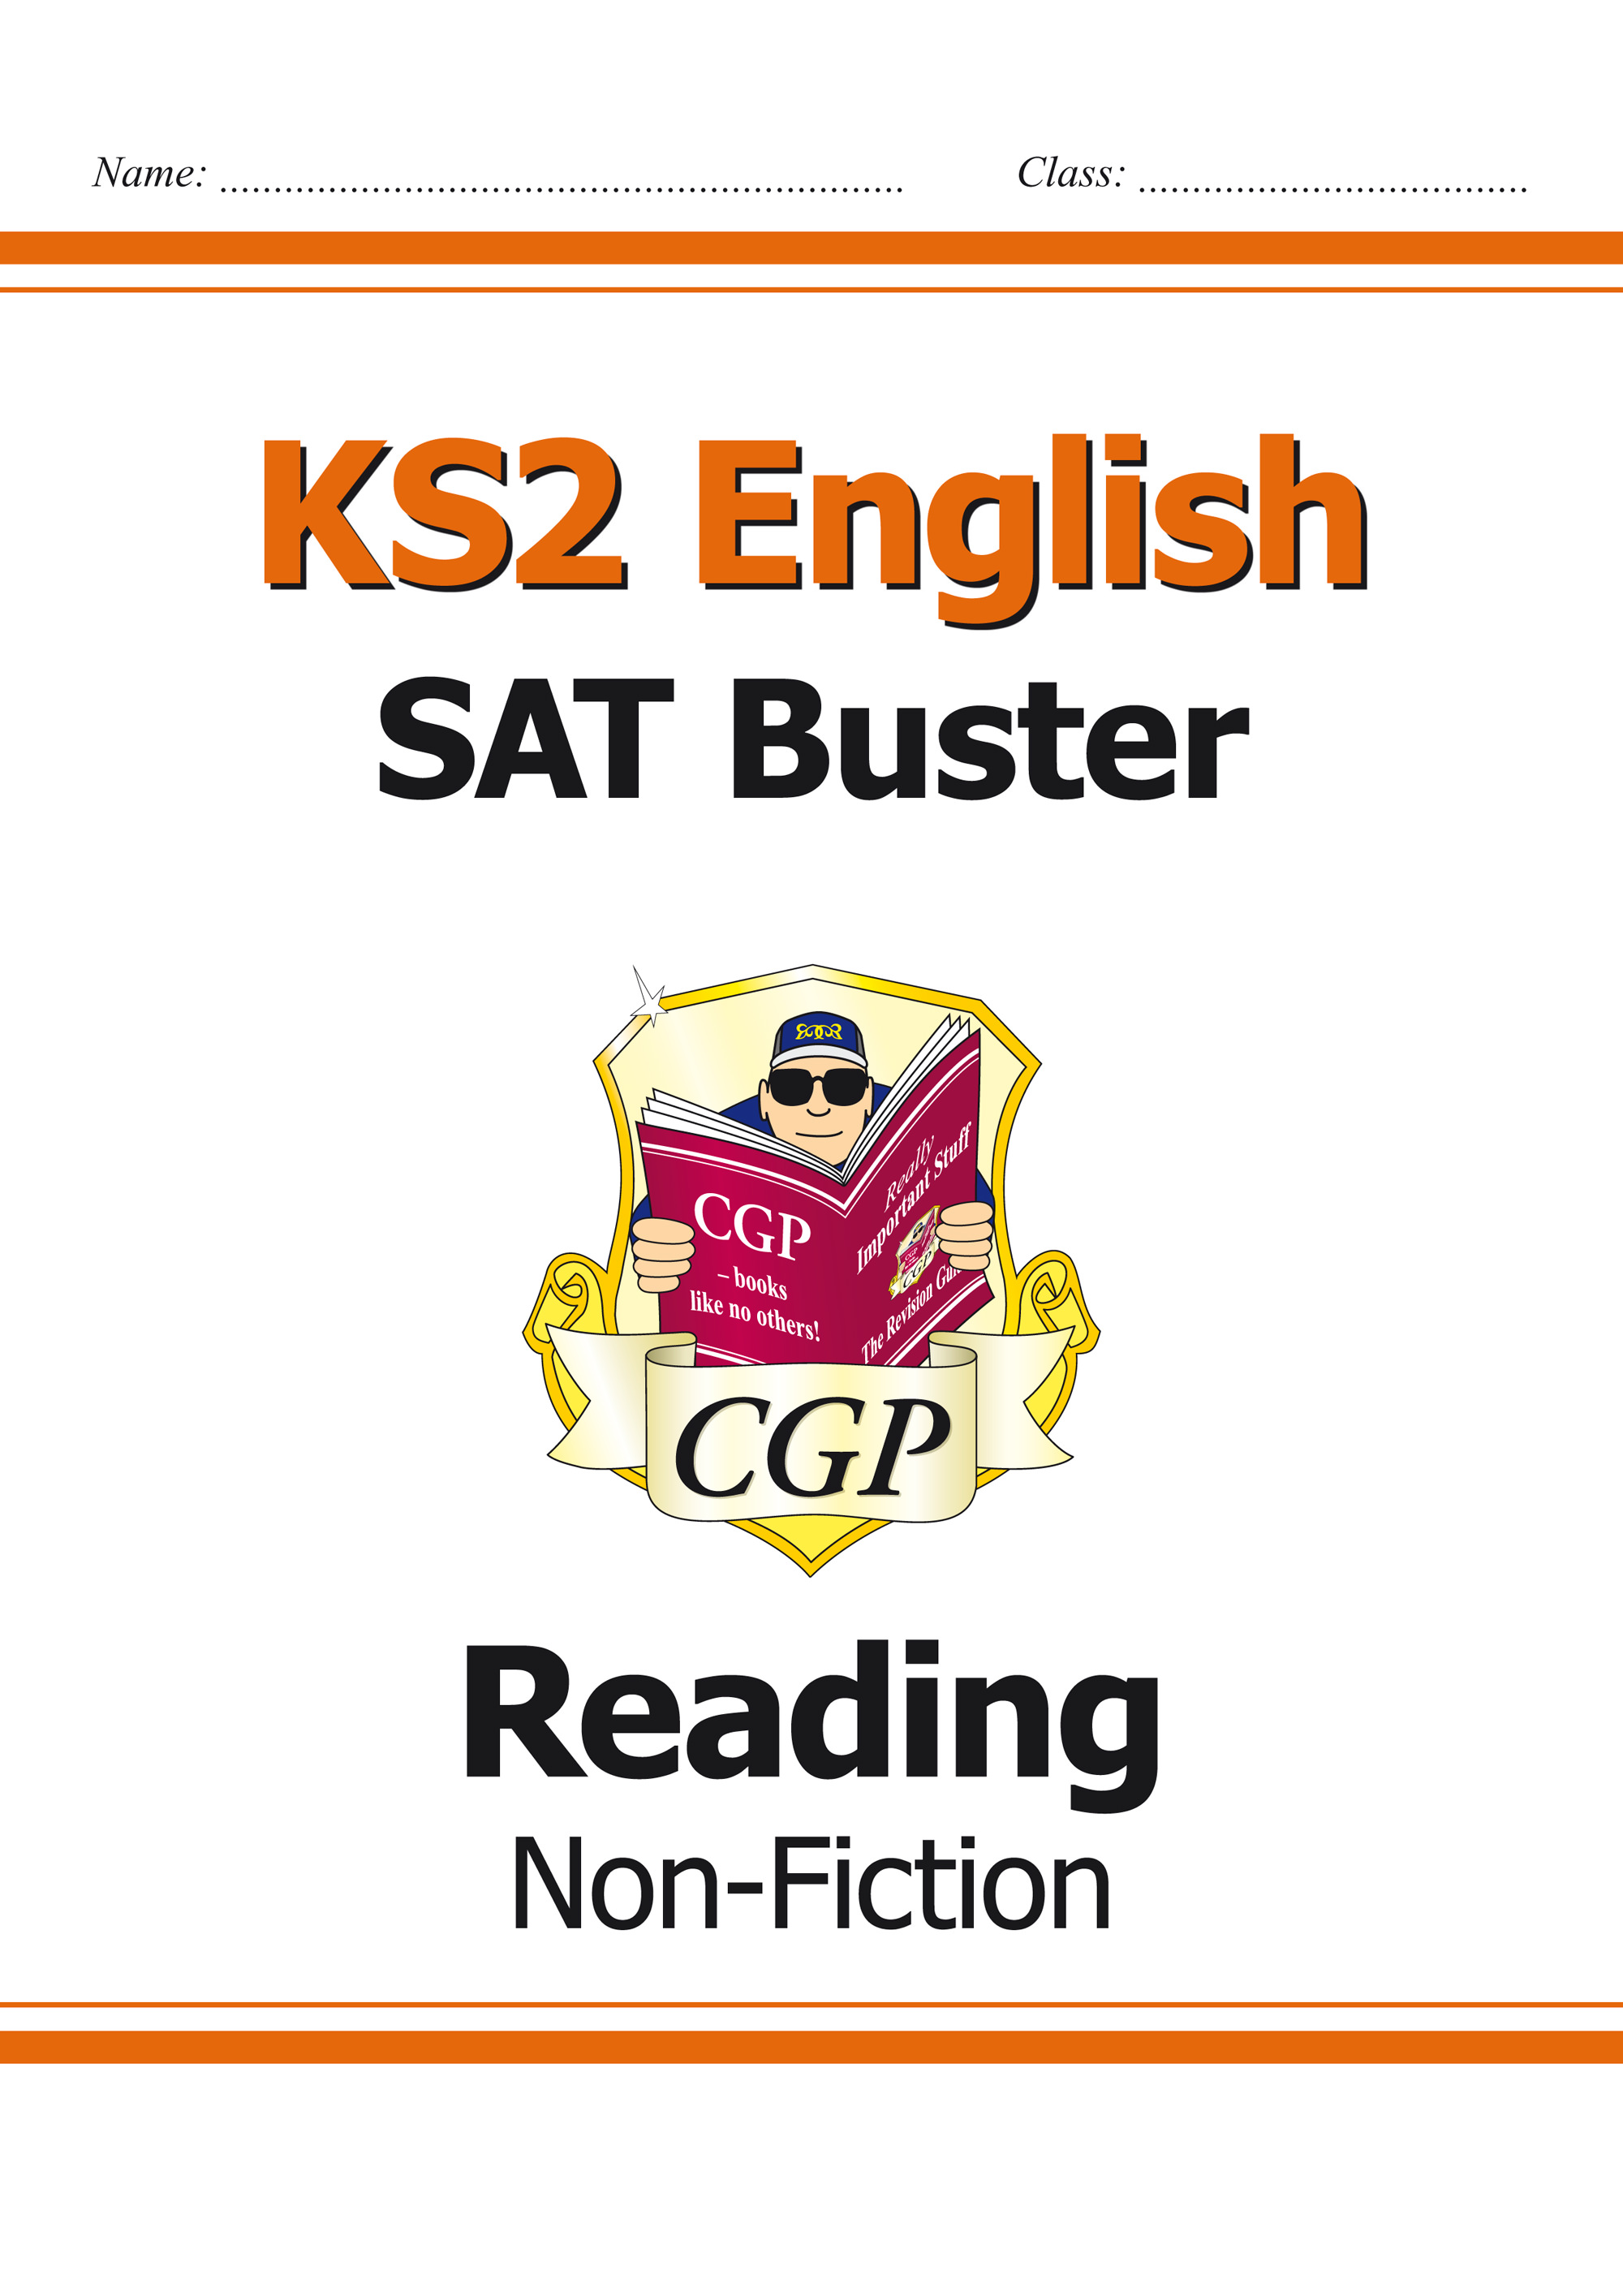 E6FRN21 - KS2 English Reading SAT Buster: Non-Fiction Book 1 (for tests in 2020)